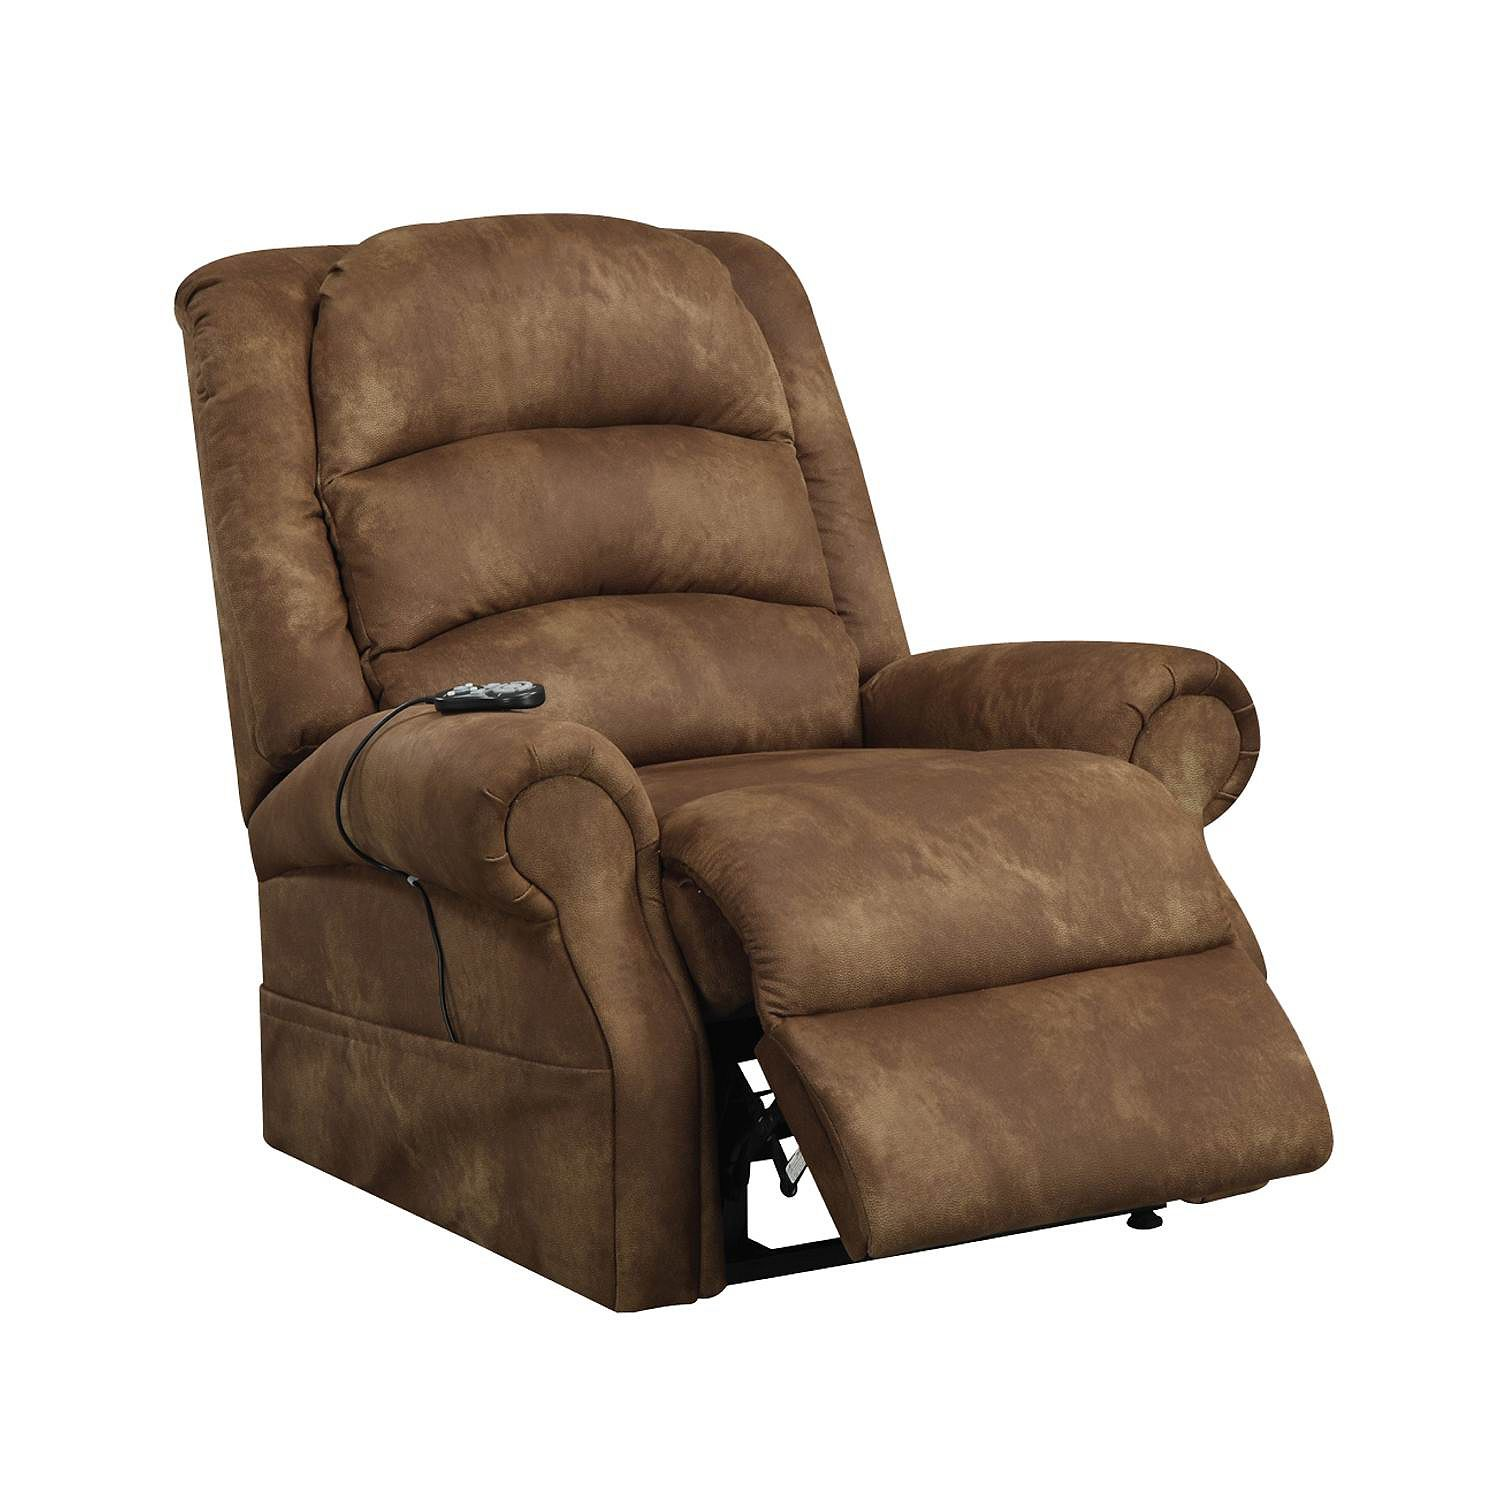 Home Meridian Comfort Lift Recliner On Popscreen